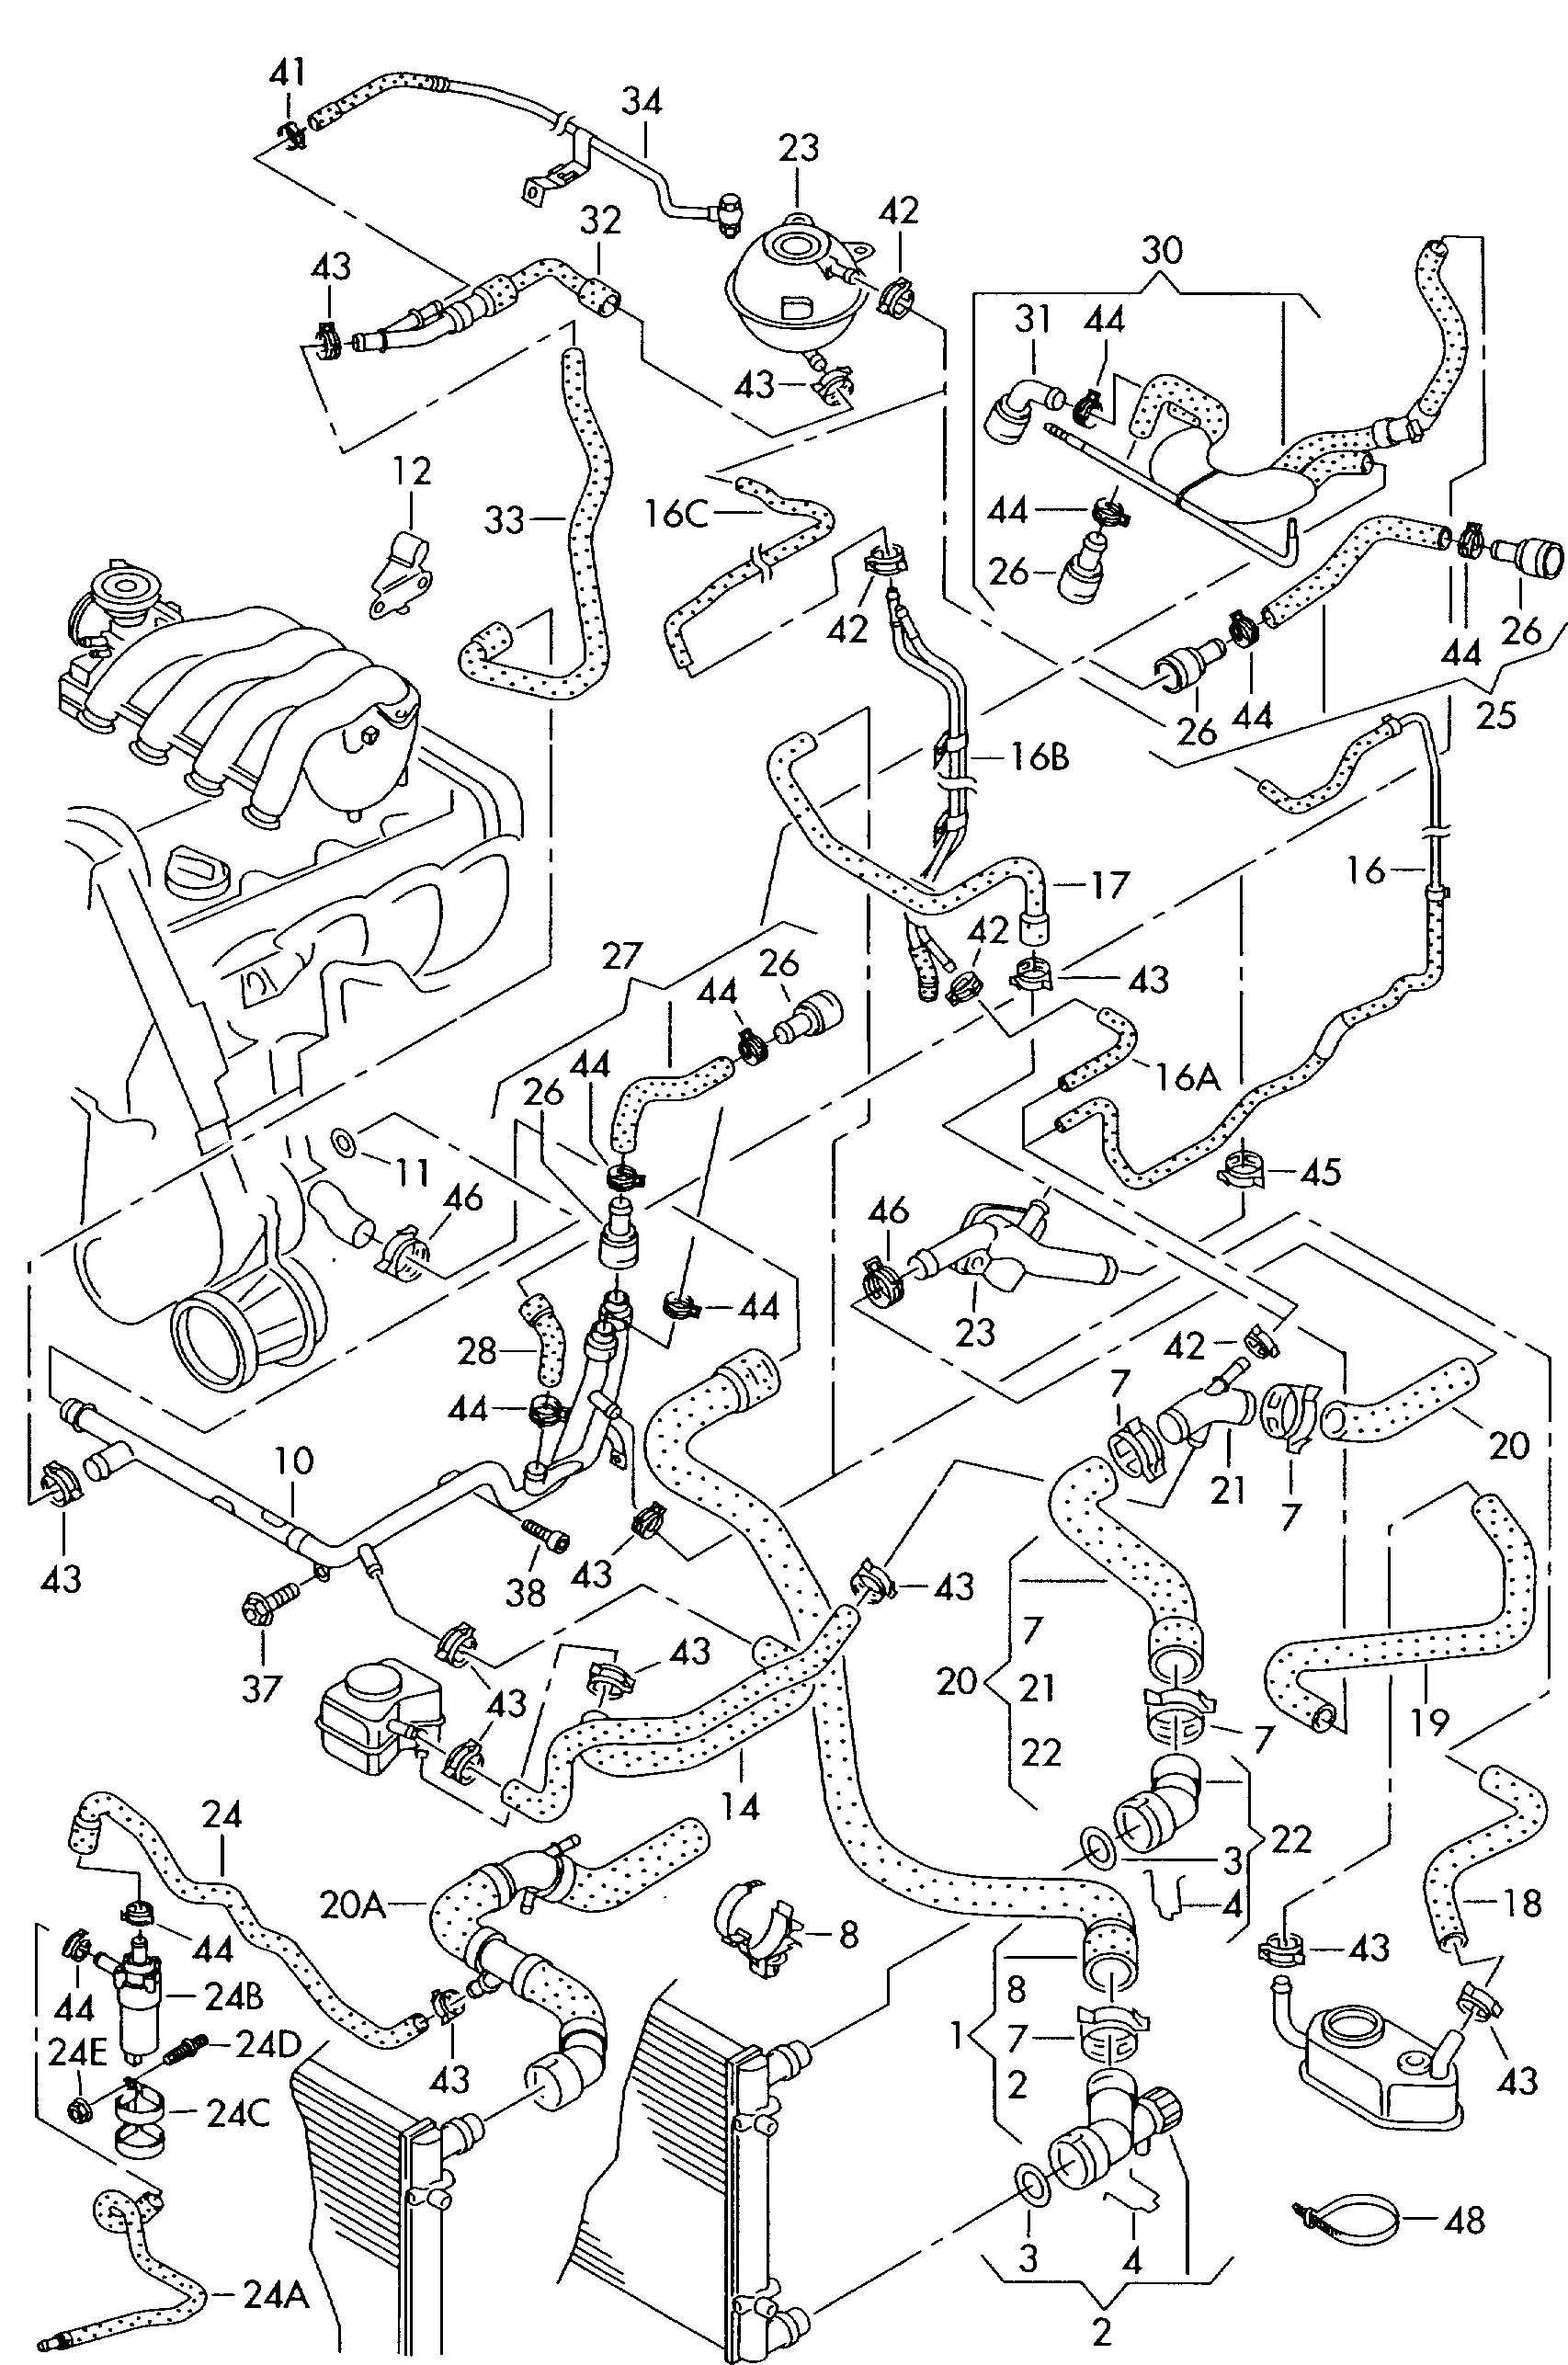 Vw Jetta Vr6 Belt Diagram